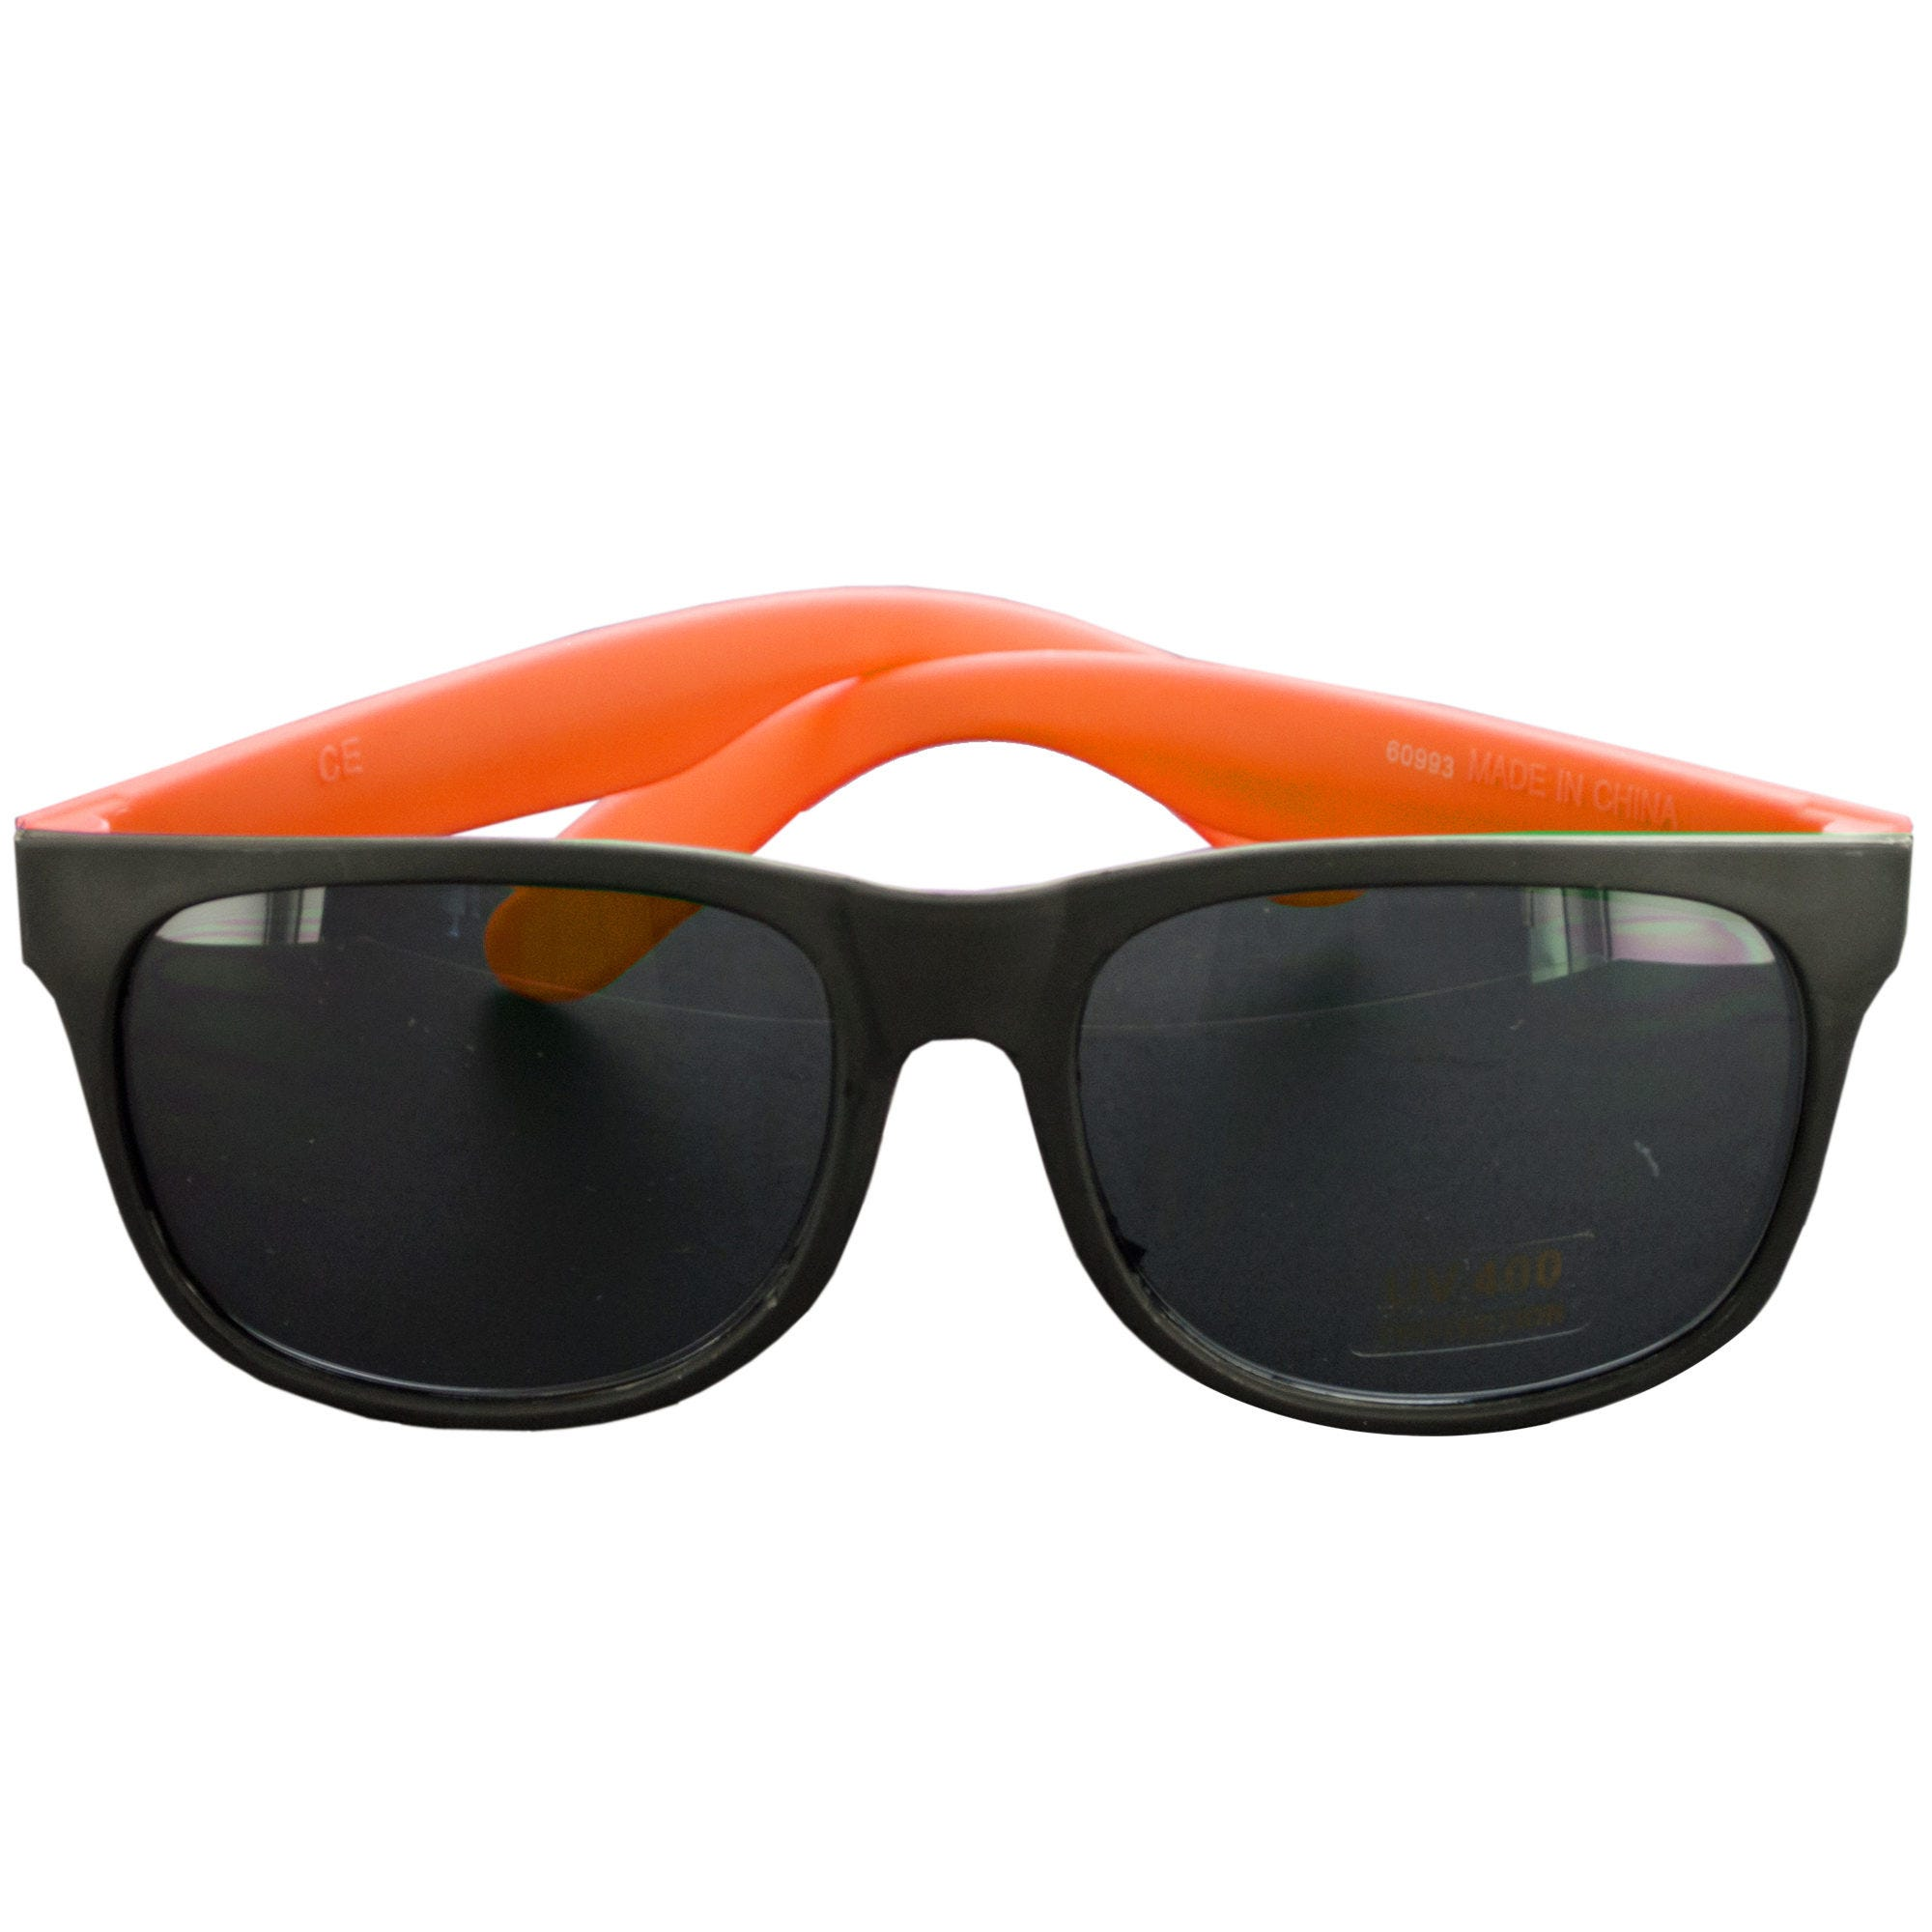 218b558327b Wholesale sunglasses now available at Wholesale Central - Items 1 - 40